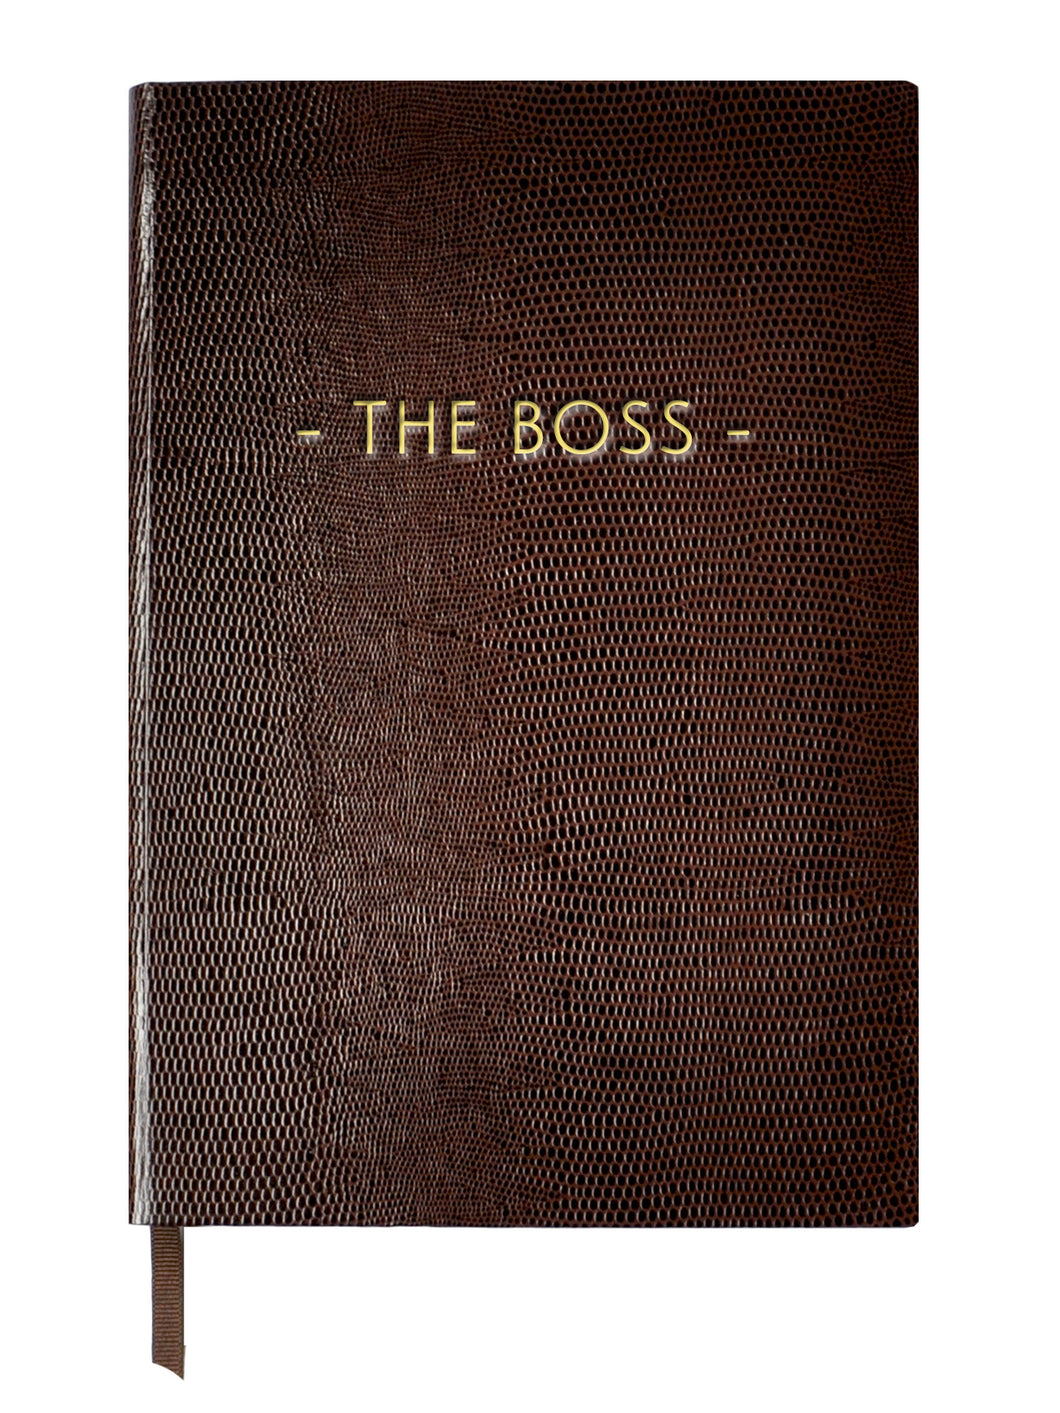 The Boss Notebook